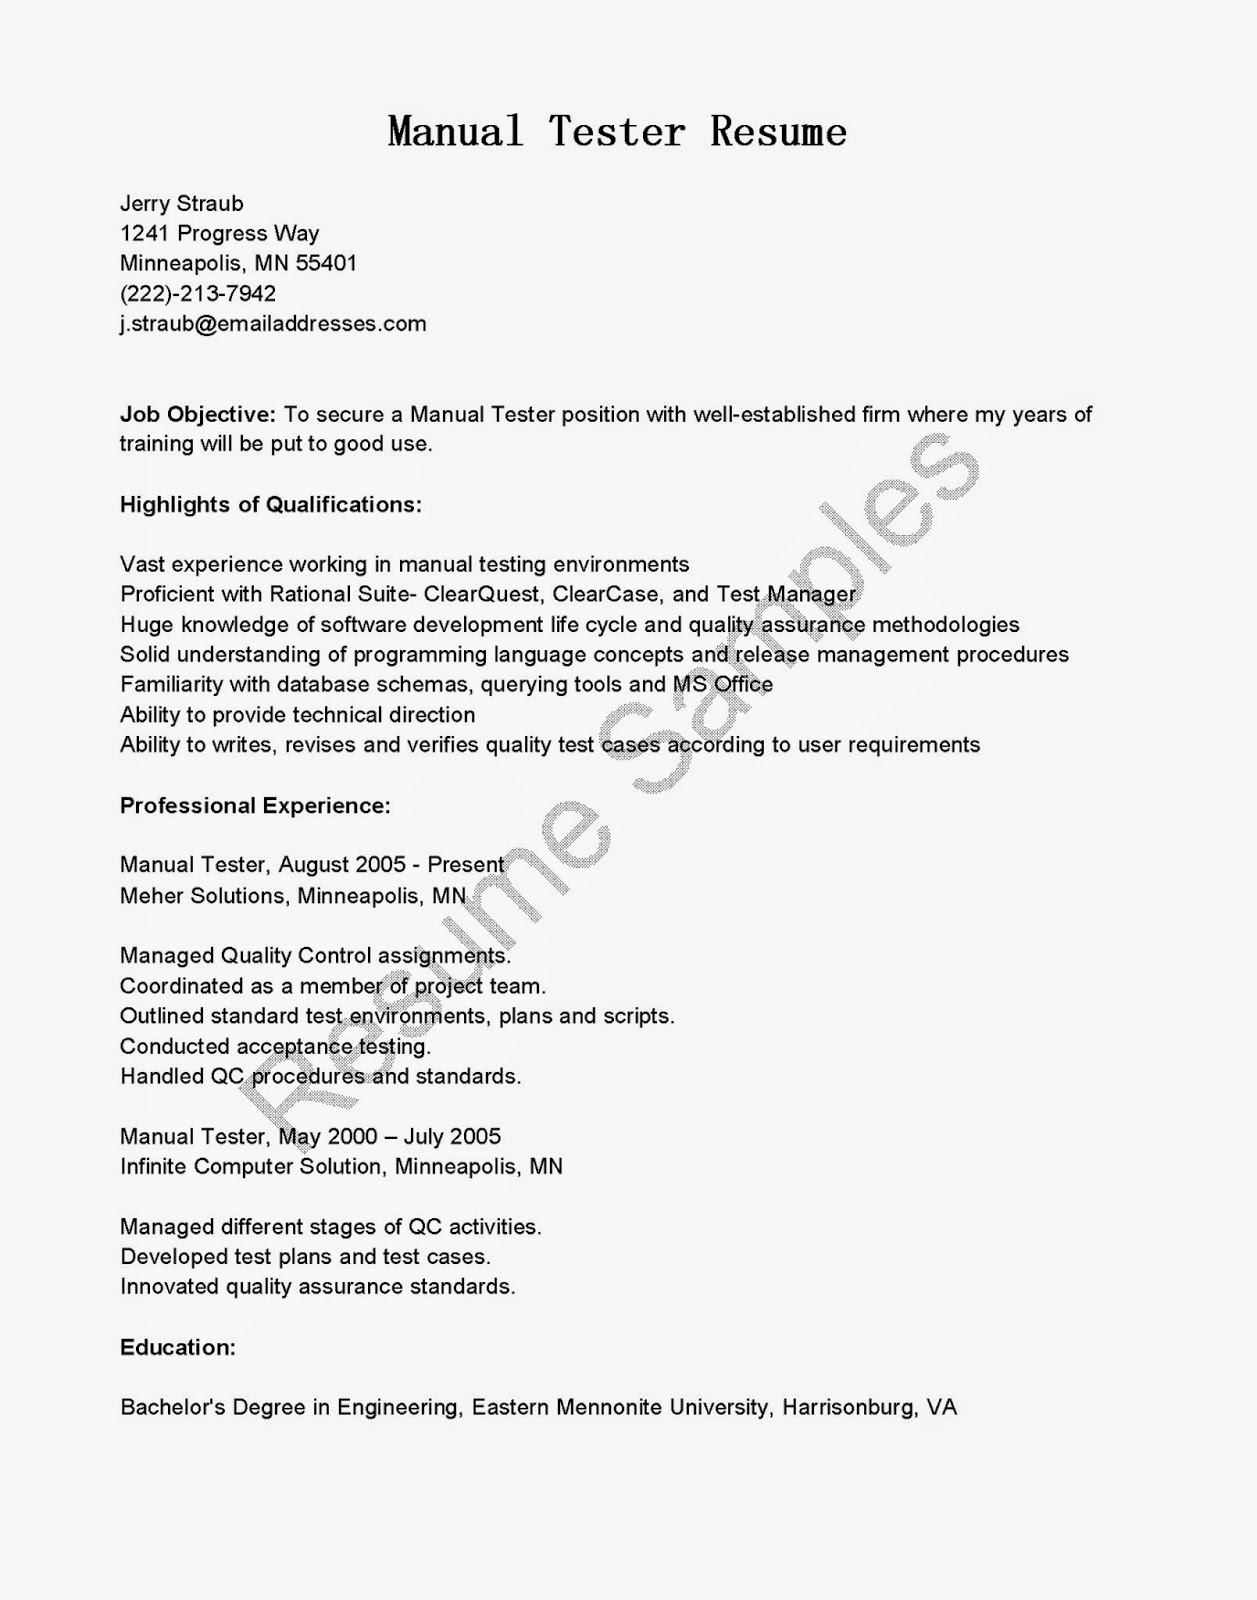 Instrument Qc Inspector Resume. Cover Letter Email Job Application Sample  Via Free Sample Job Inside Breathtaking How To Write A